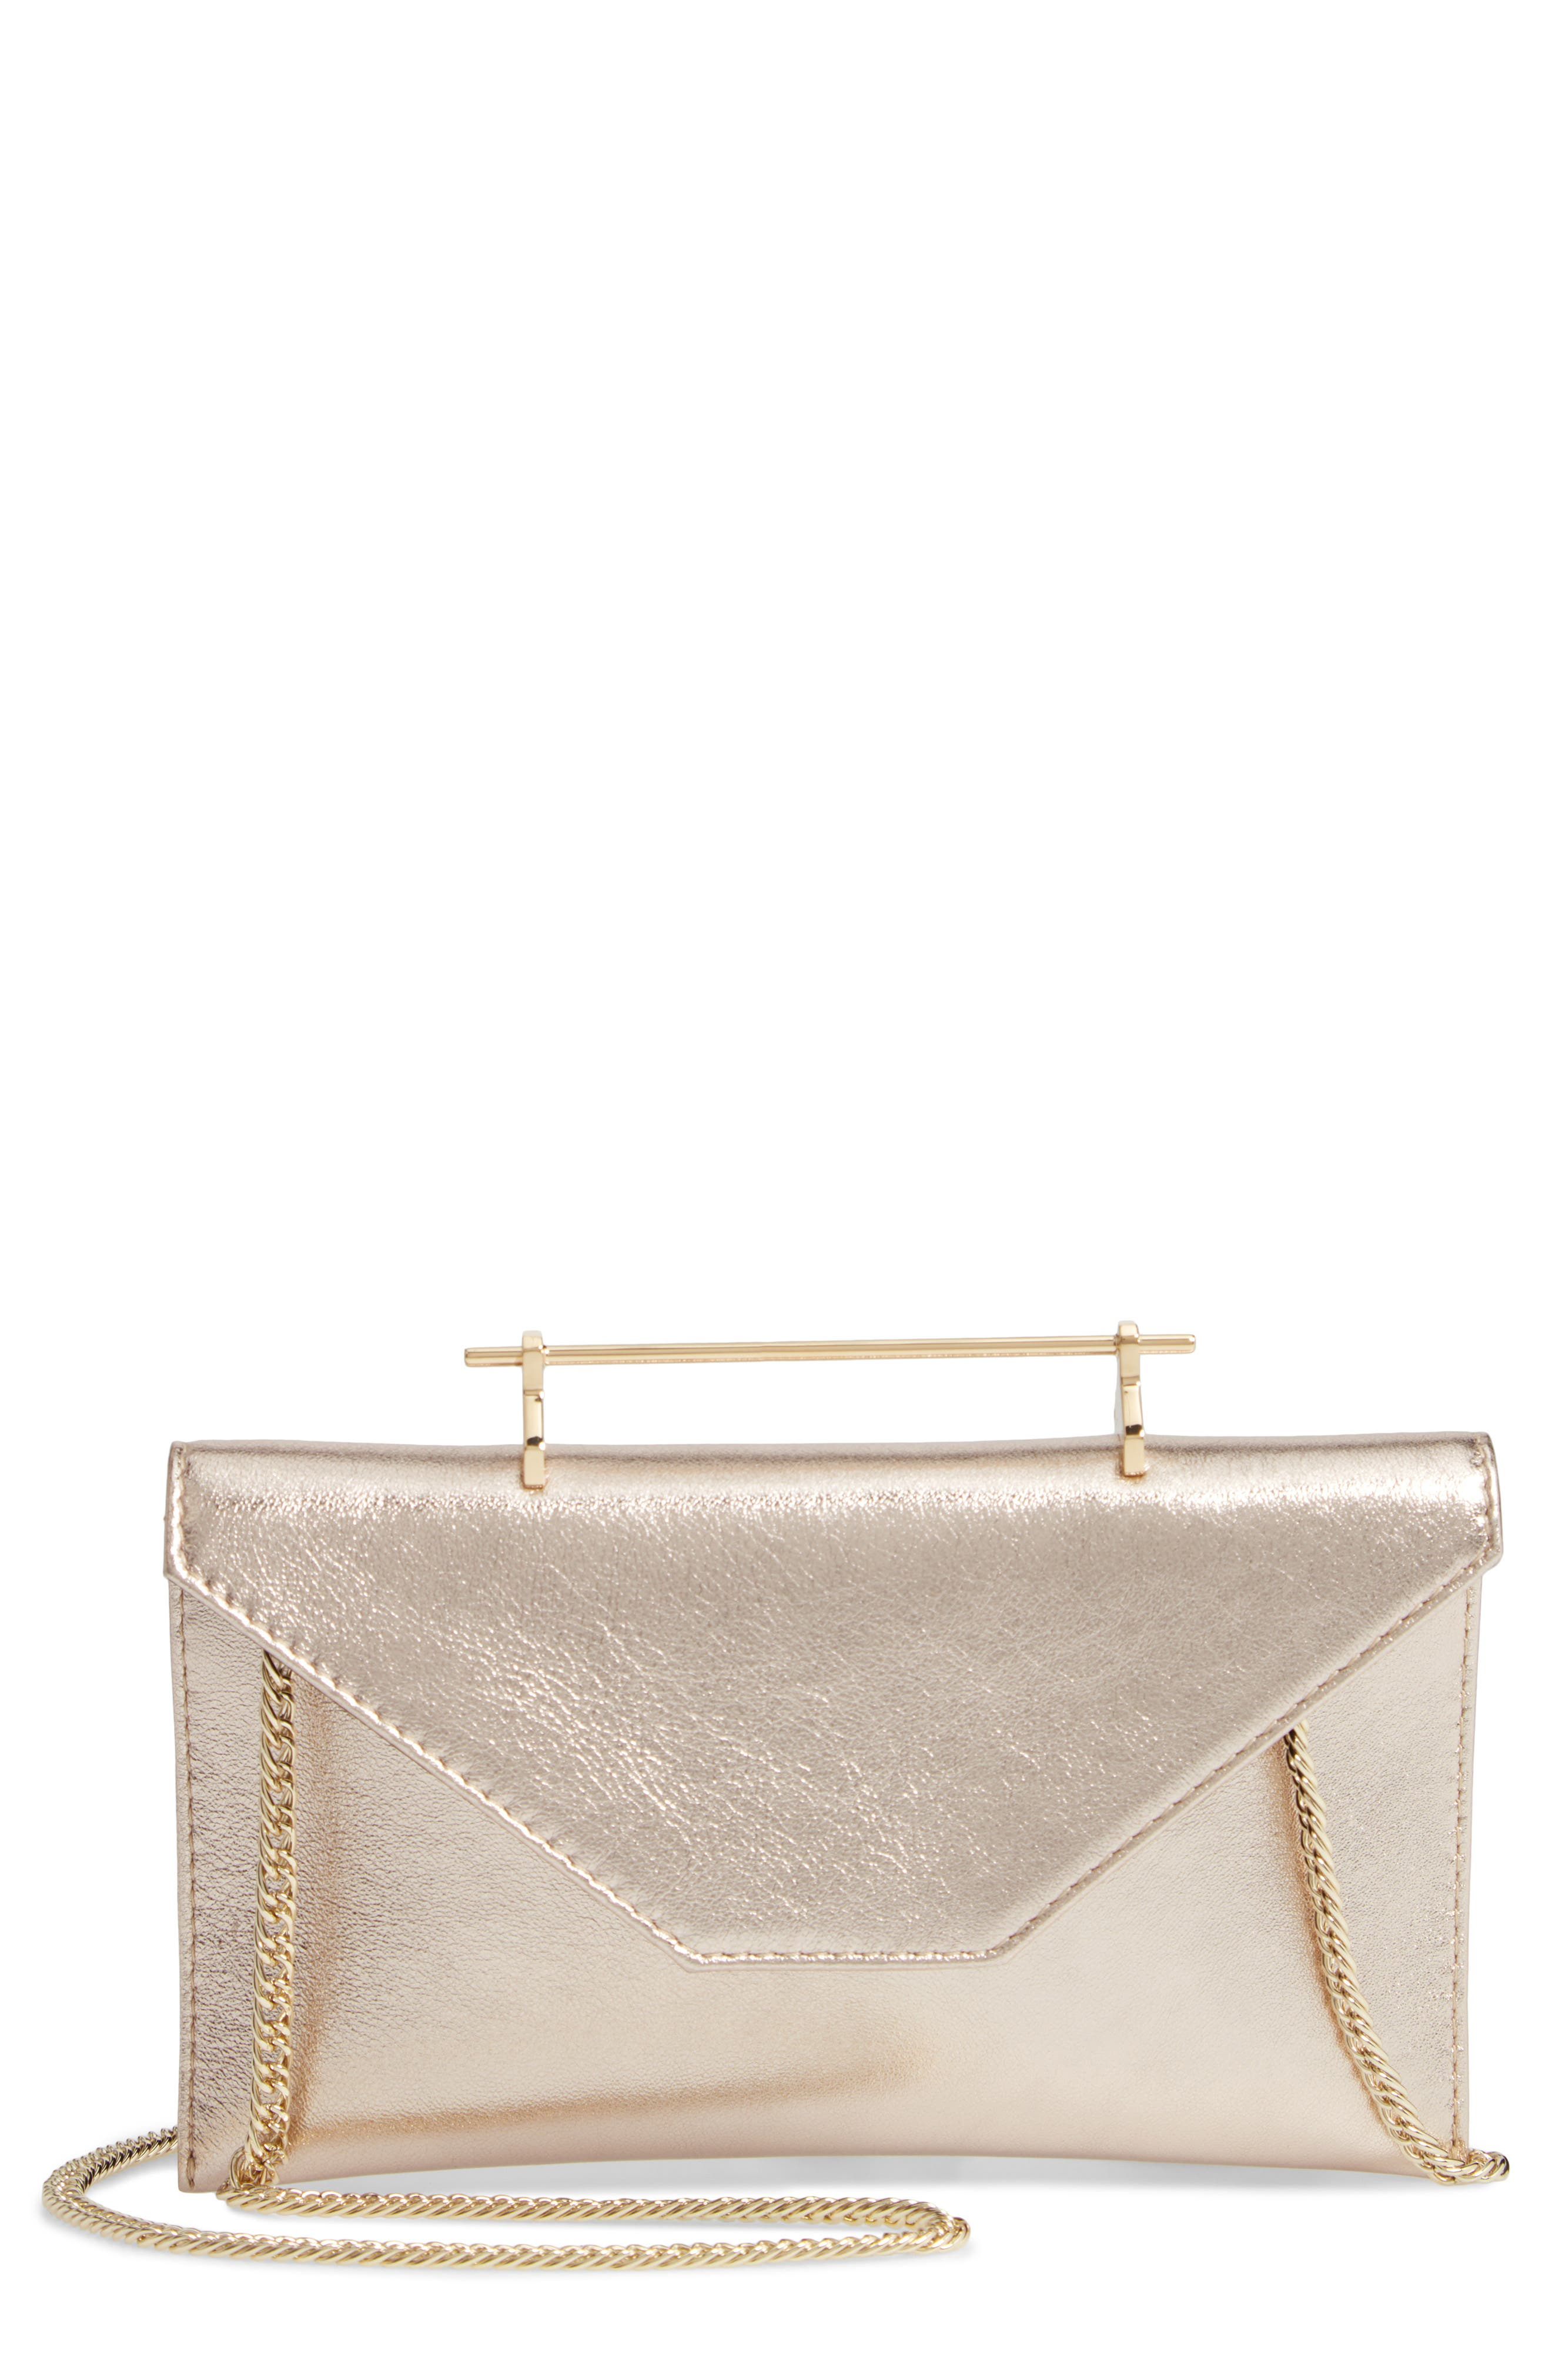 Annabelle Metallic Calfskin Leather Clutch,                             Main thumbnail 1, color,                             METALLIC GOLD/ GOLD